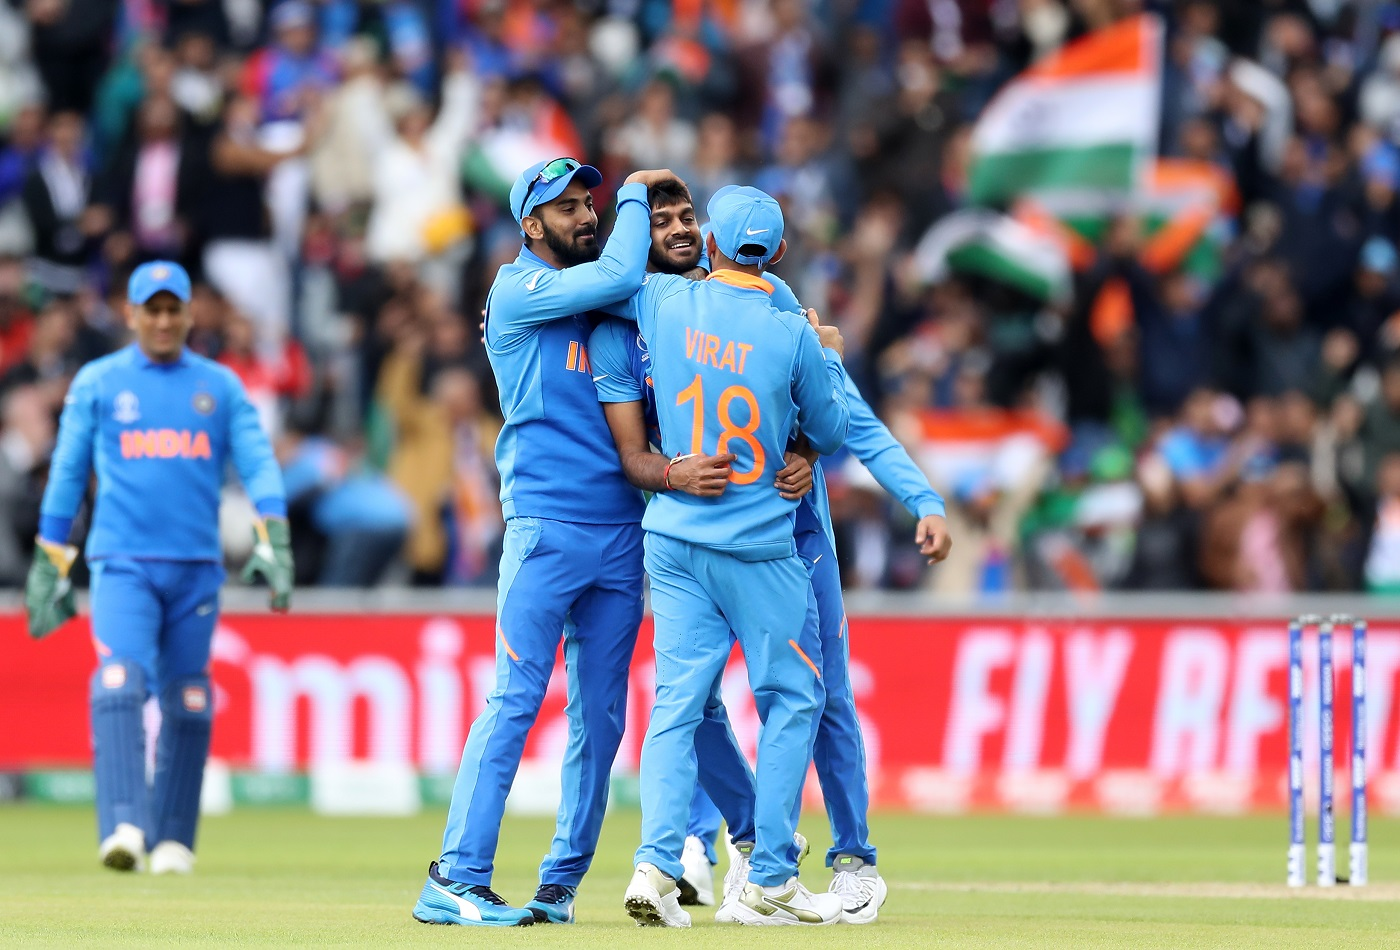 ICC World Cup 2019: India is Way Better Than Pakistan as a Team, Says Sachin Tendulkar